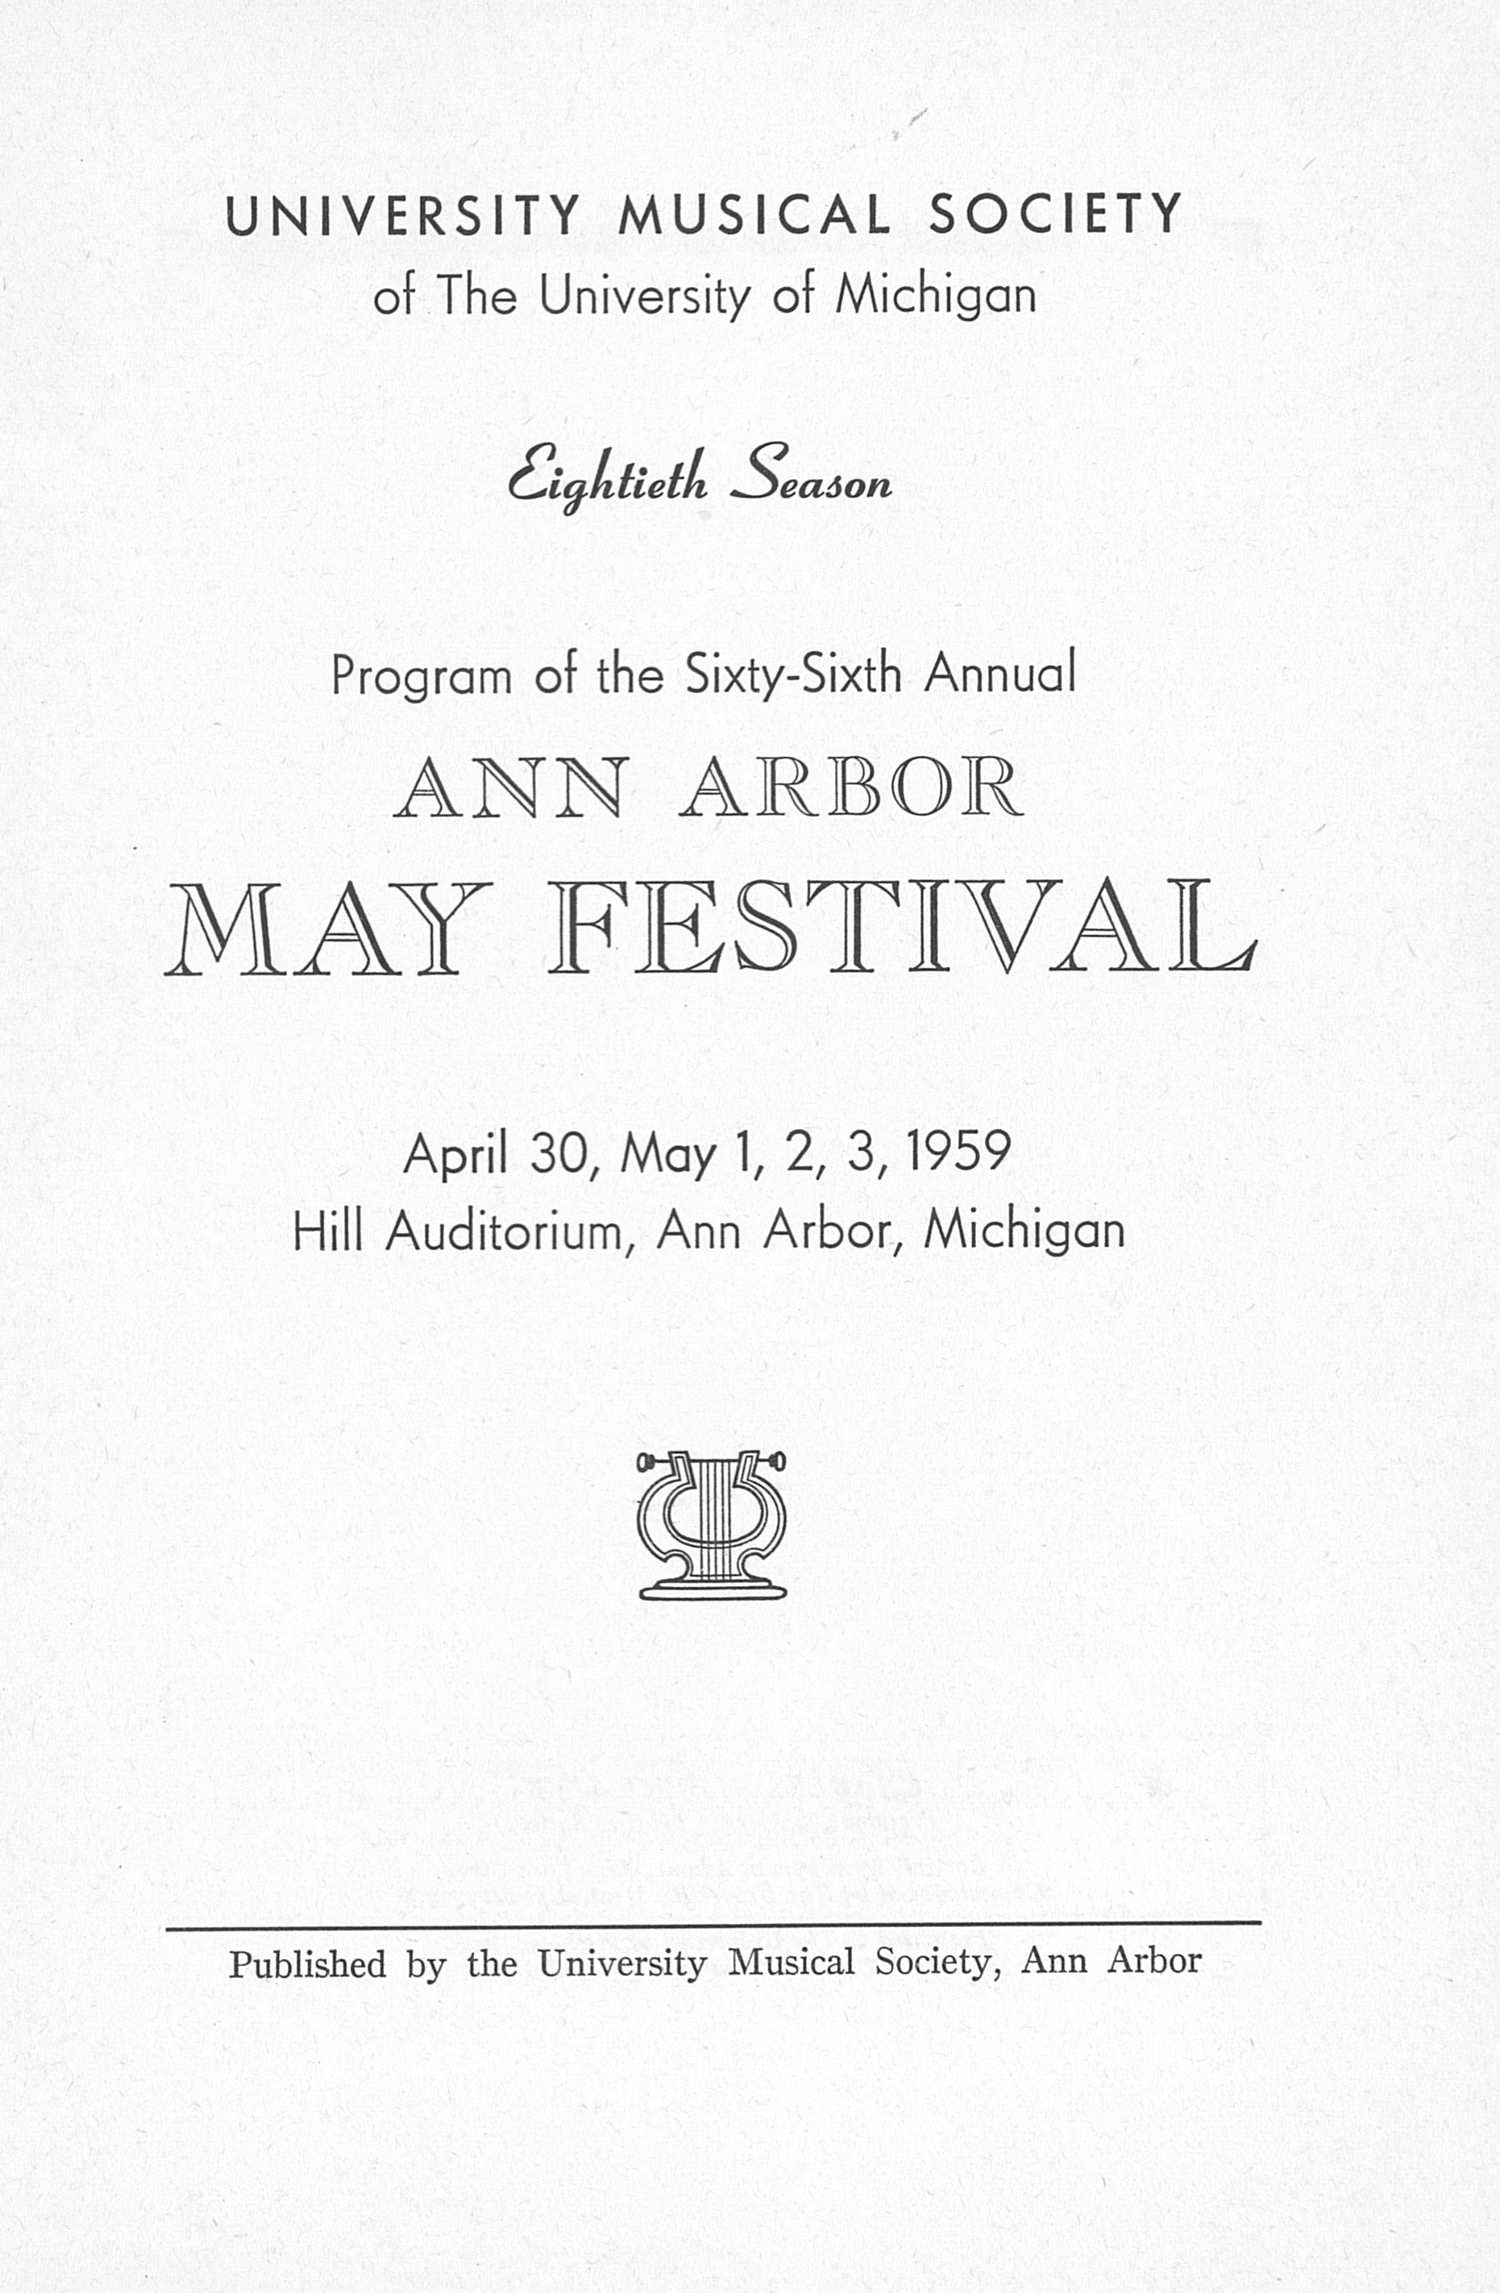 UMS Concert Program, April 30, May 1, 2, 3, 1959: The Sixty-sixth Annual Ann Arbor May Festival -- The Philadelphia Orchestra image